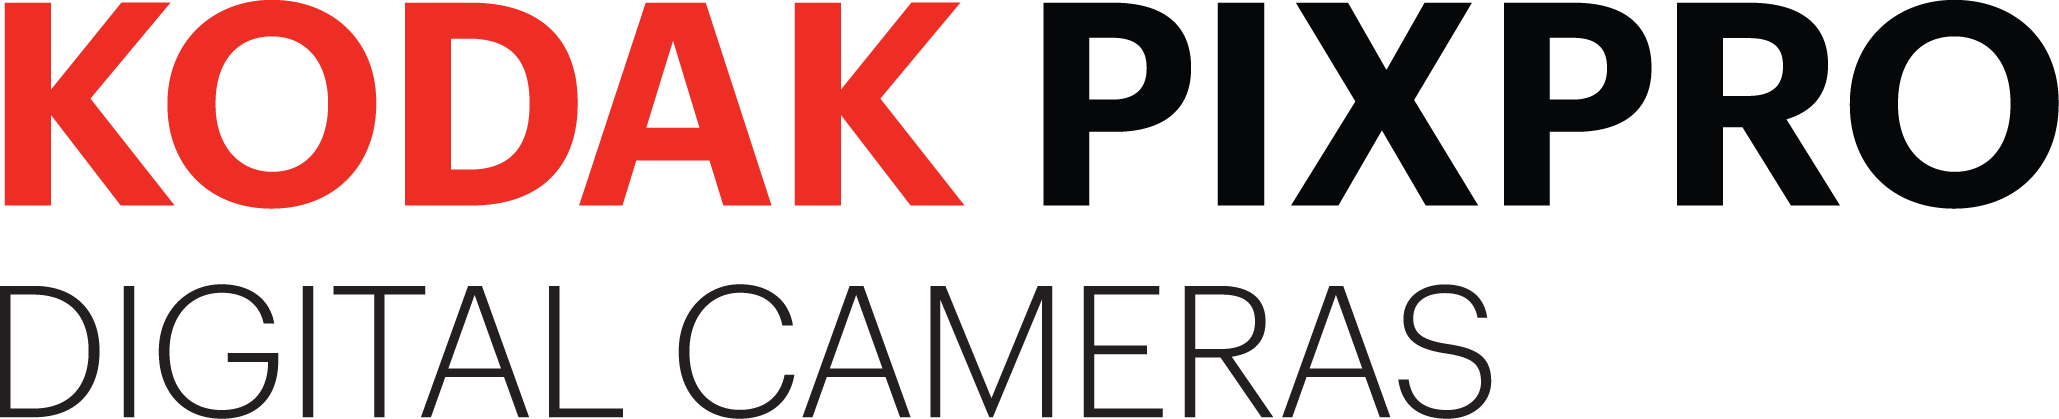 2018 KODAK PIXPRO Awards